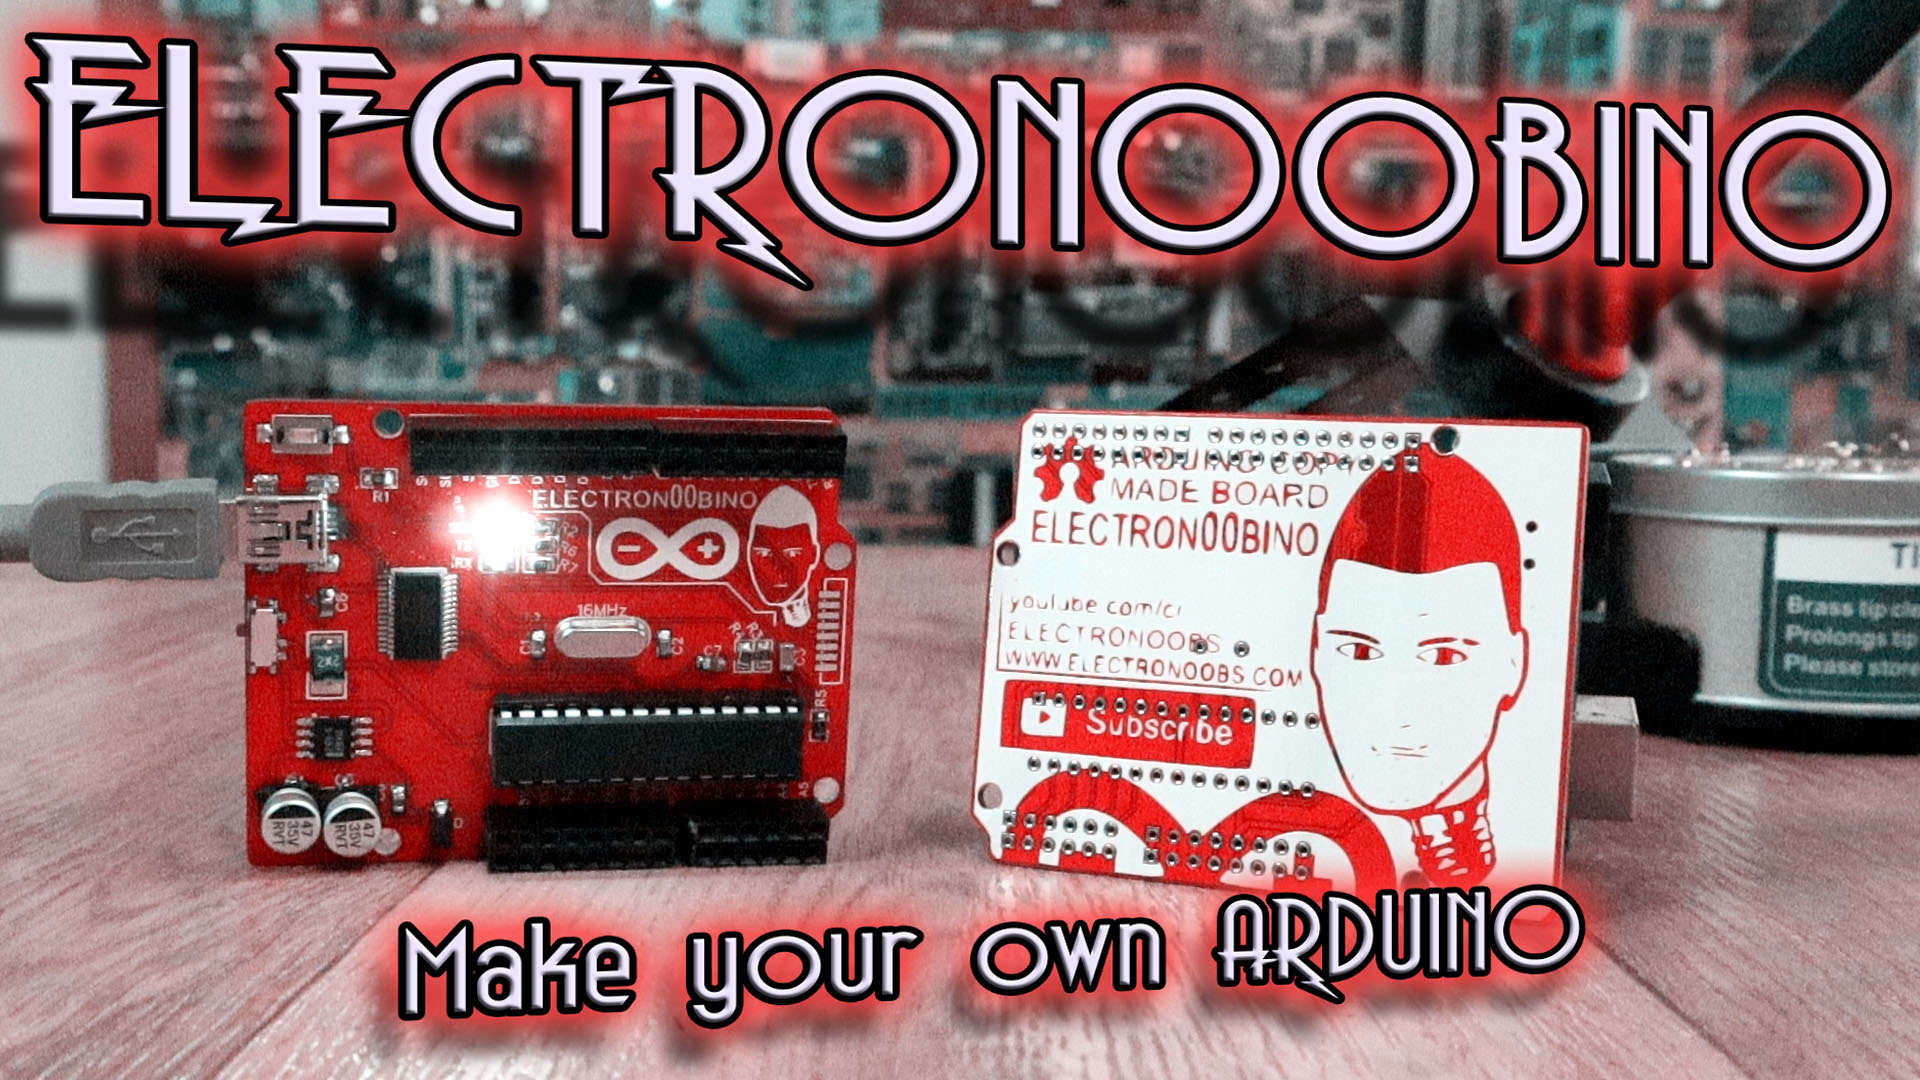 Electronoobino Make Your Arduino Uno Board Own Circuit Images